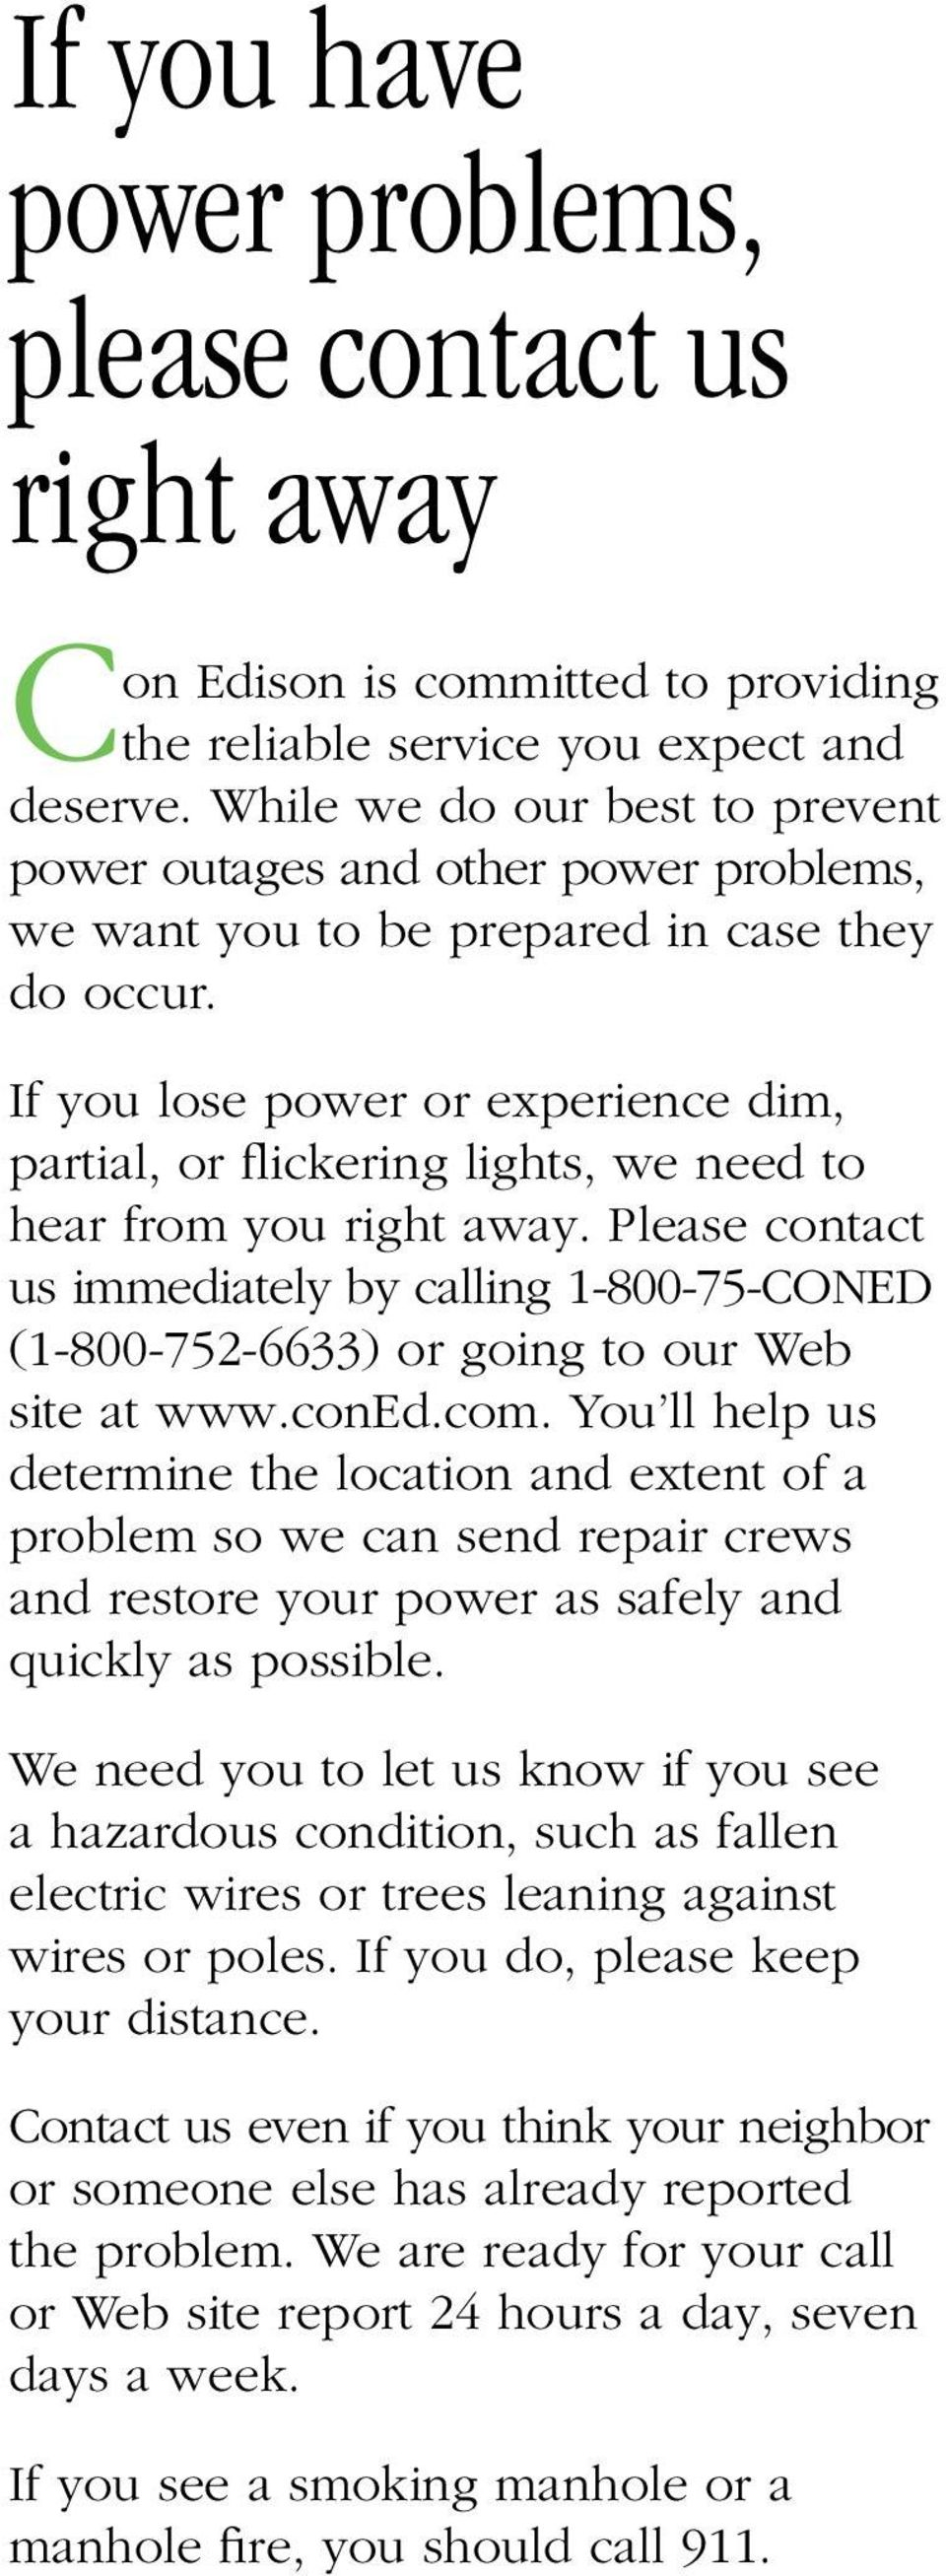 If you lose power or experience dim, partial, or flickering lights, we need to hear from you right away.